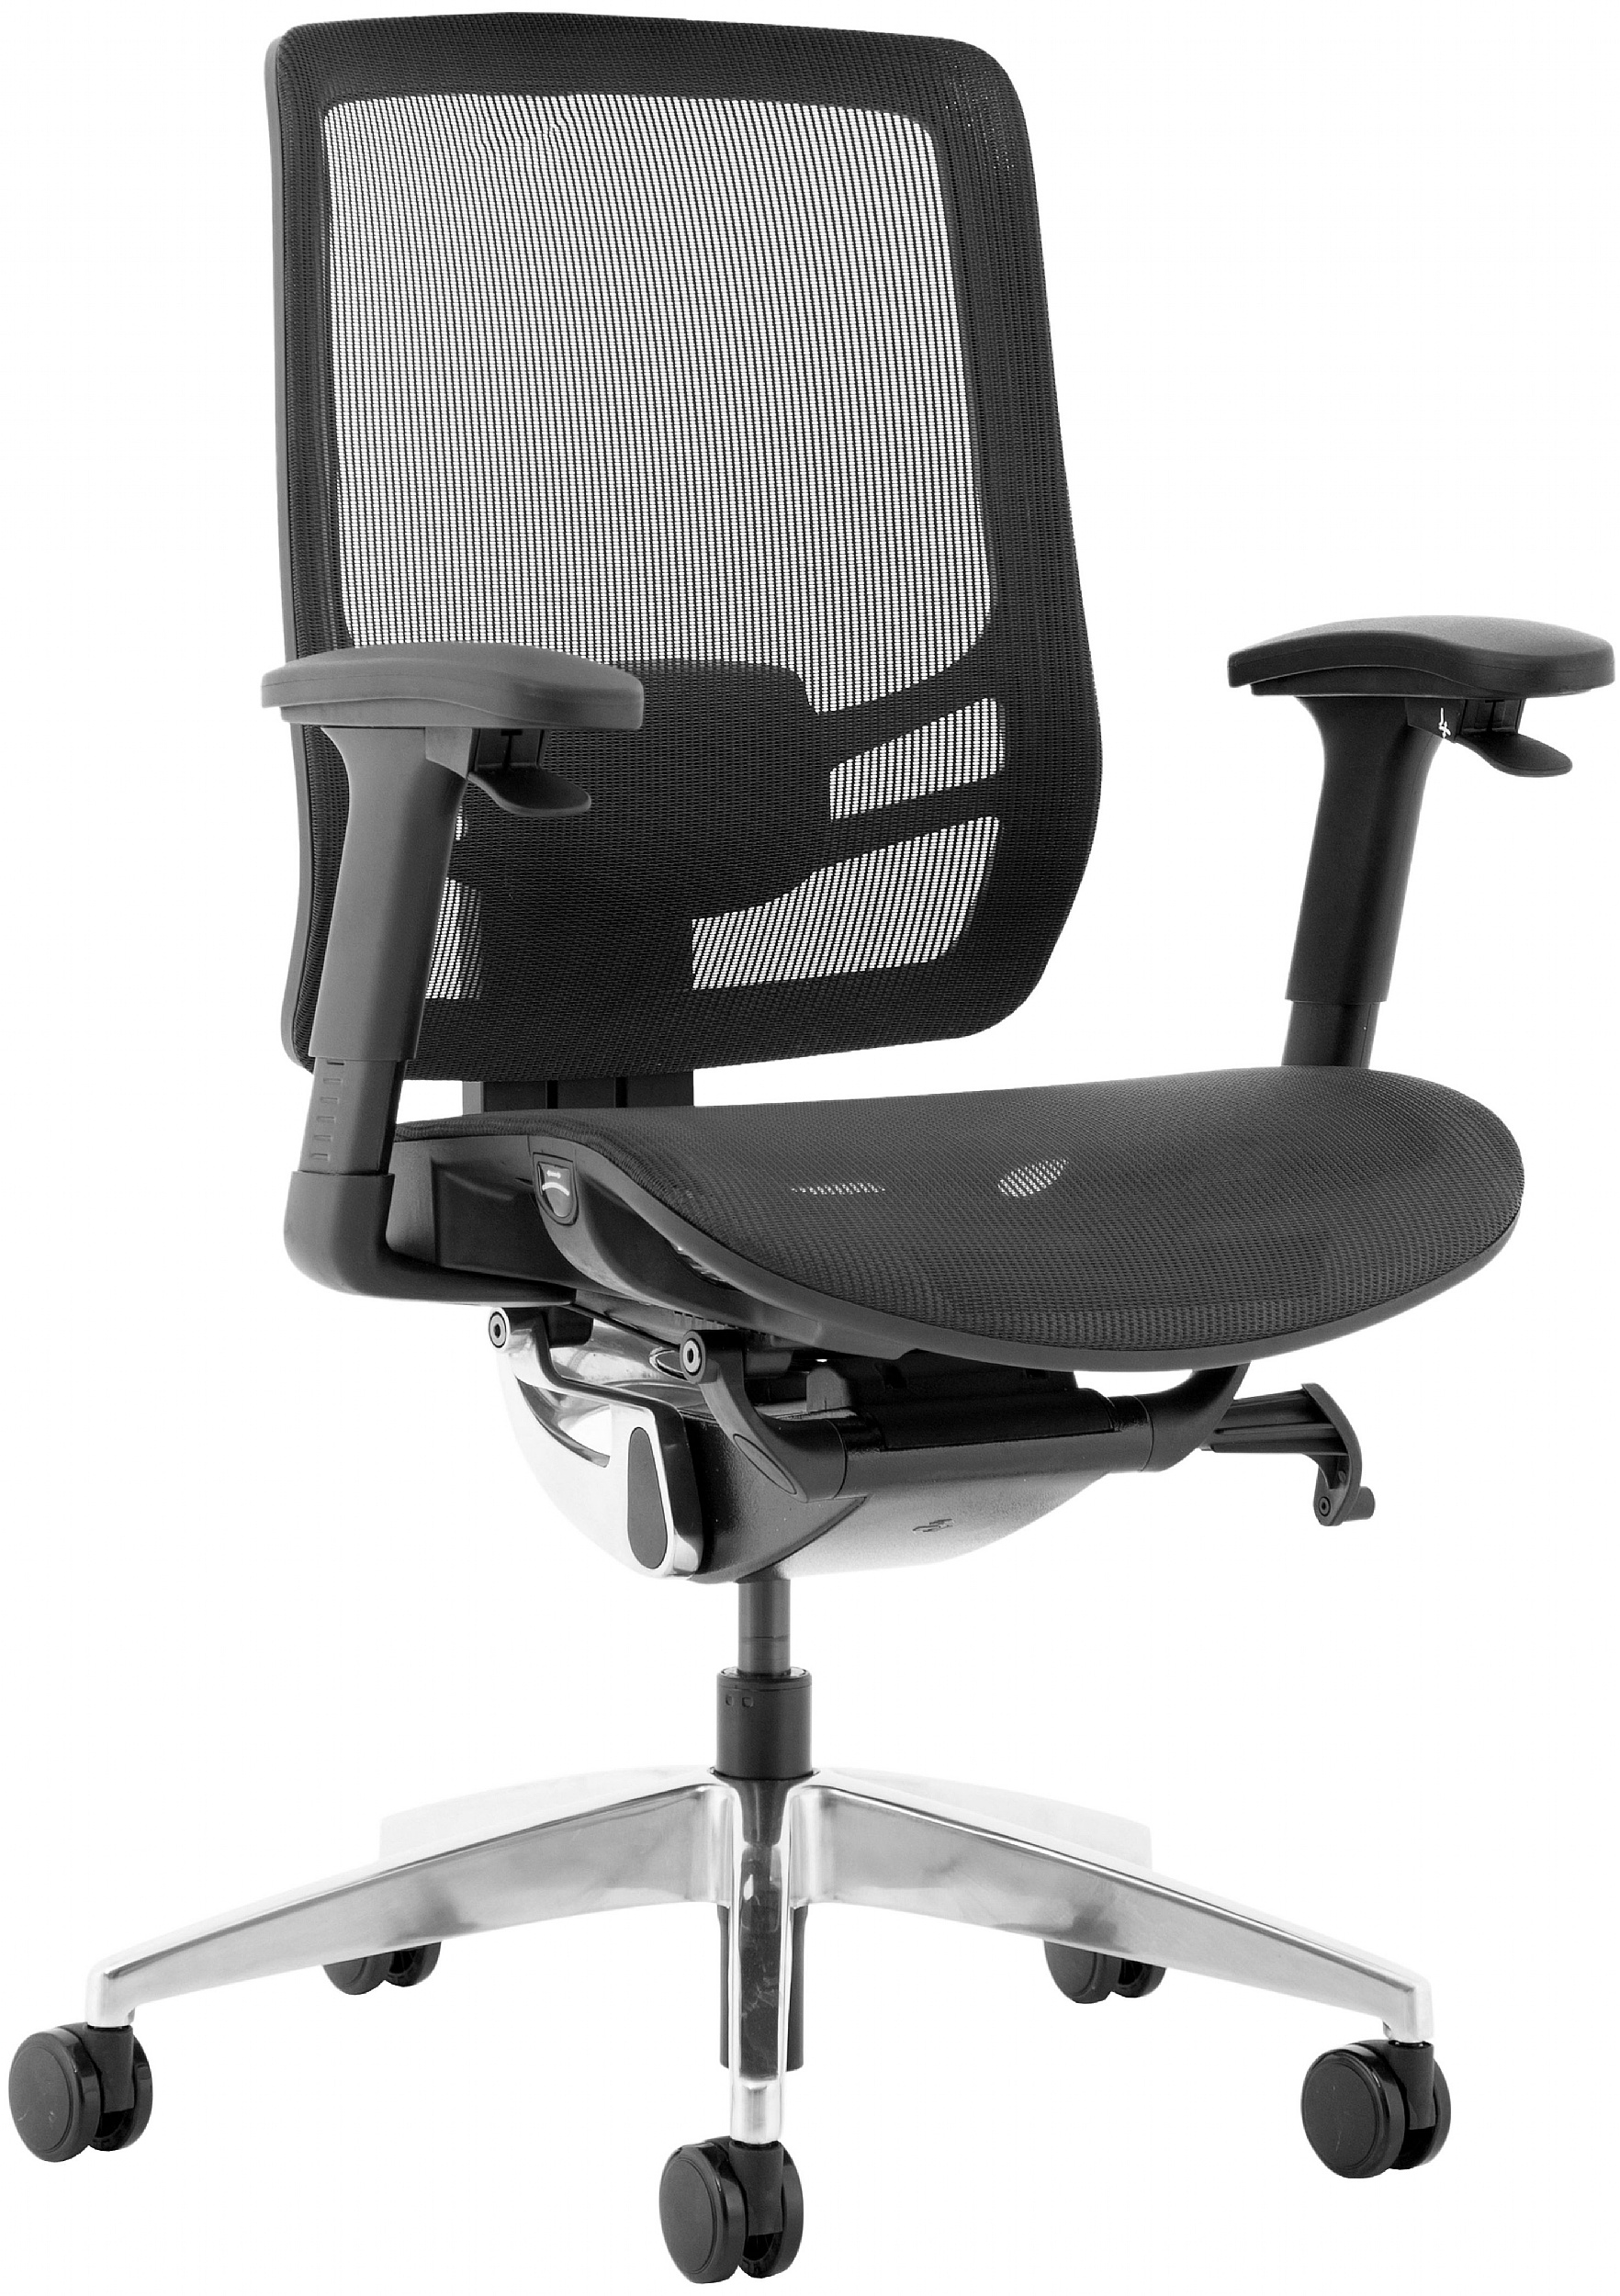 Ergo Posture 24 Hour All Mesh Office Chair Posture Ergonomic Office Chairs